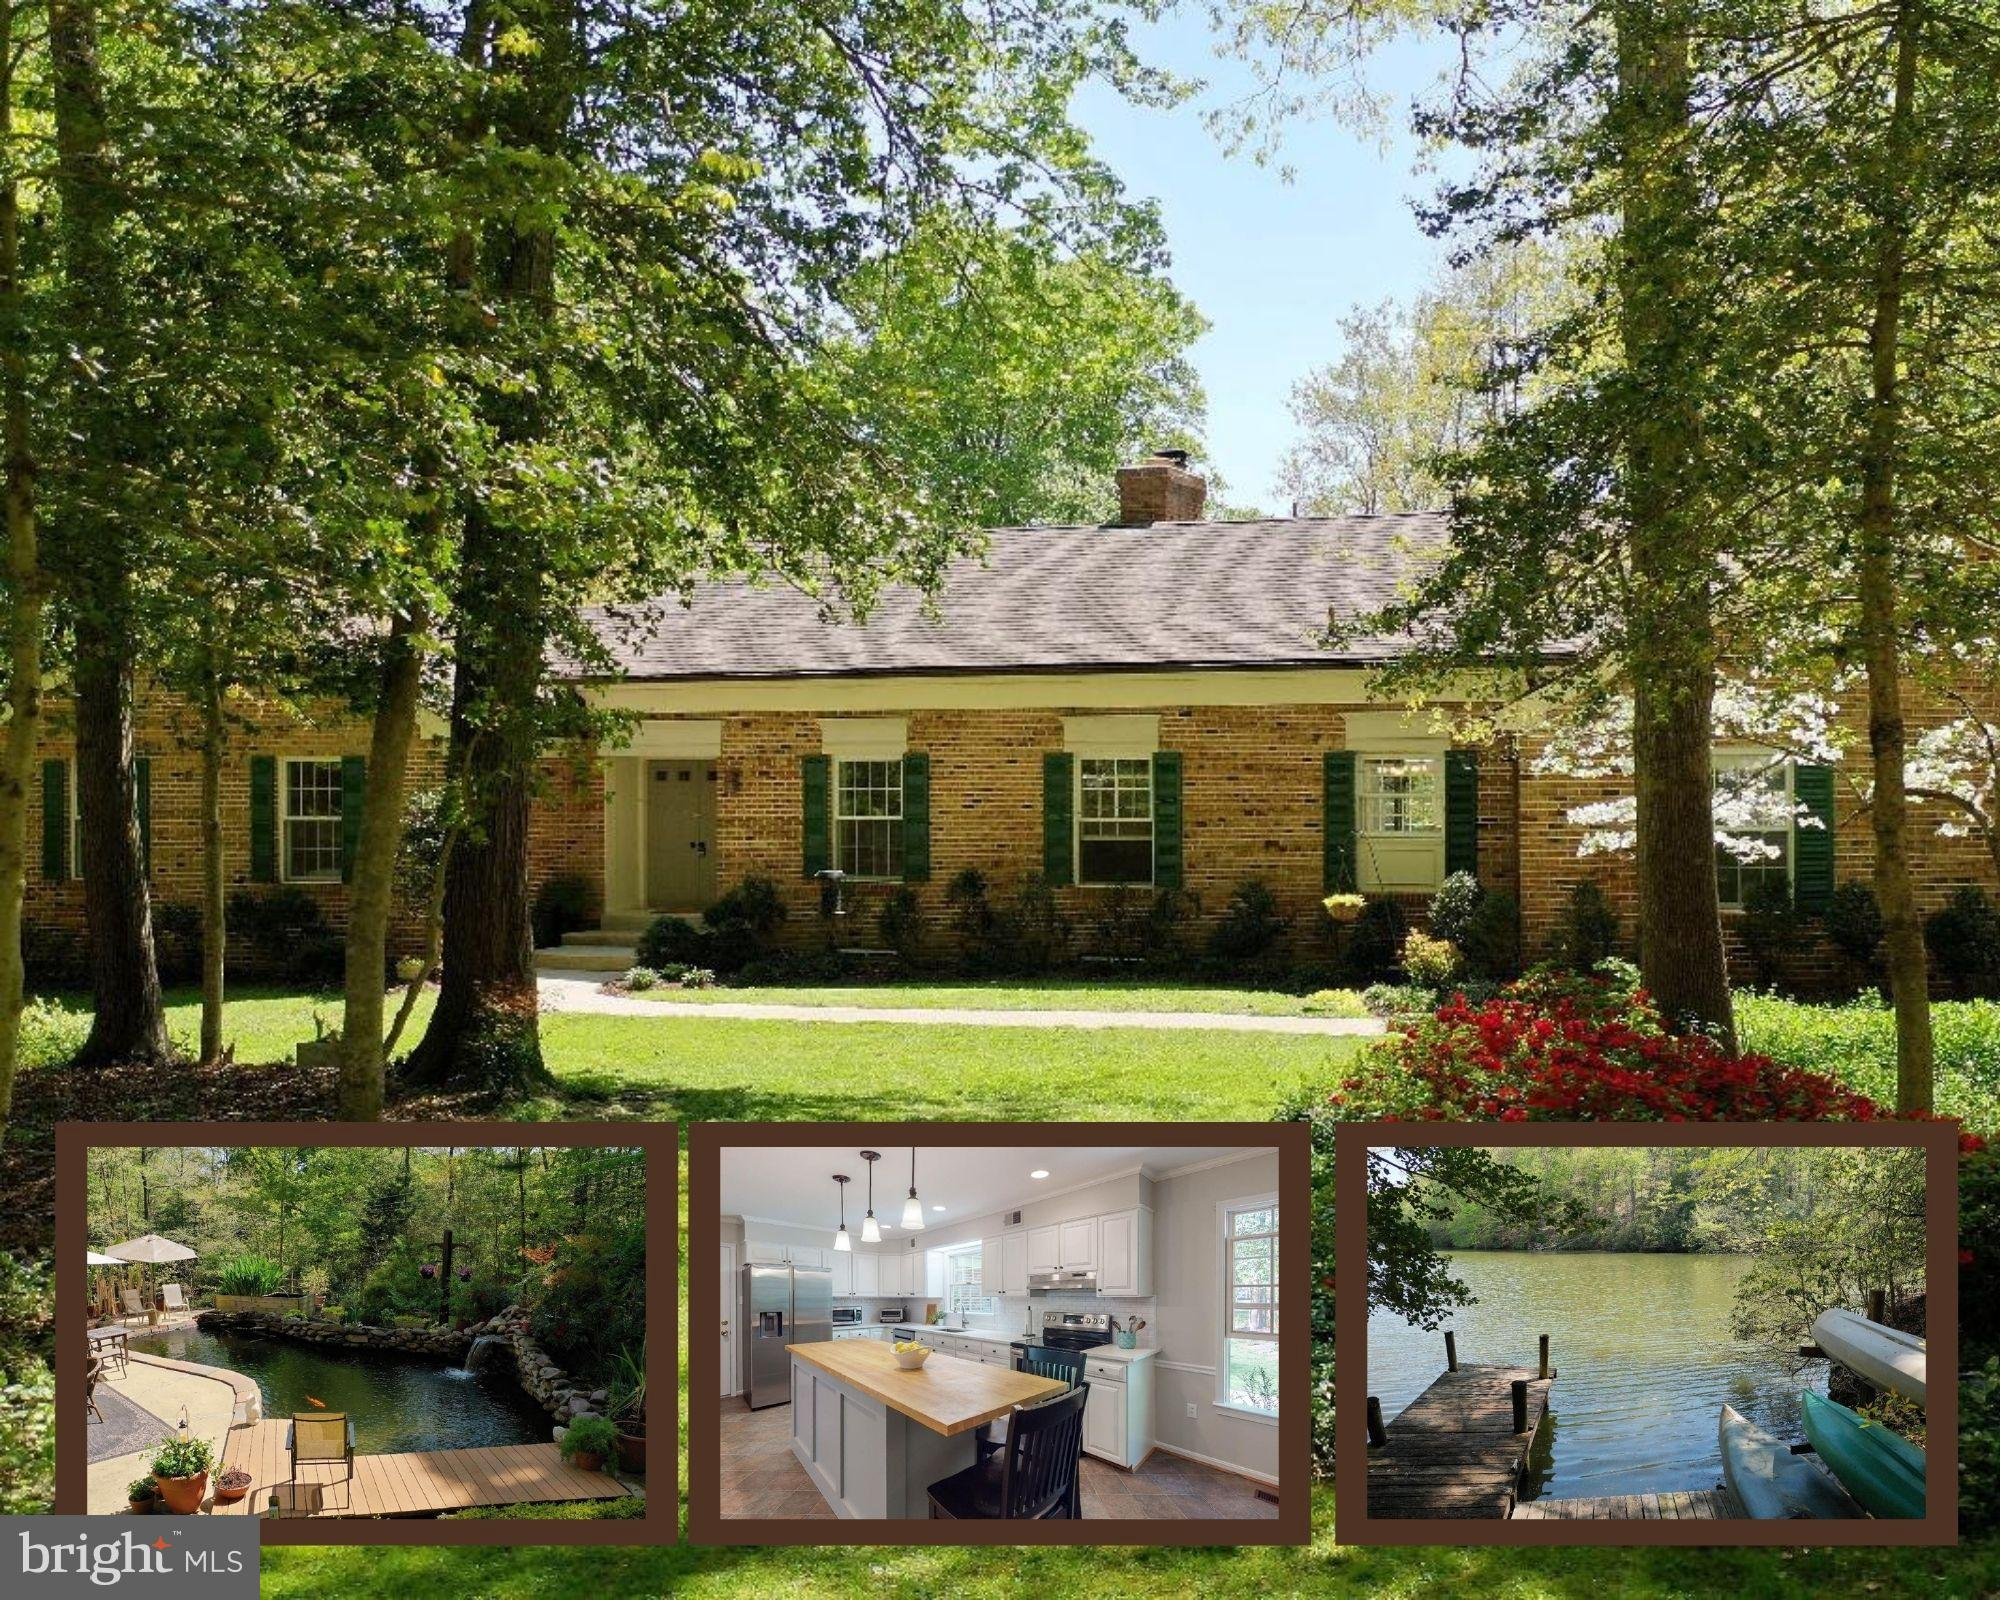 Ferry Landing Woods at it's best!  Beautiful custom home with lake front access! But that is not even  the best exterior feature!  You also have a beautiful patio with gorgeous koi pond with a waterfall. There is a large deck off the back of the house with seasonal views of the lake . To the right rear of the lot at a distance you can seasonally see the Patuxent River too!  The perfect outdoor space to rest and relax. Inside you will find lots of beautiful recent updates.  The kitchen is huge with new stainless appliances , upgraded cabinets, and lovely new Quartz countertops and a big island for meal  preparation.  New carpeting in bedrooms and living room.  There is a double sided fireplace in the family room and living room.  Capped off now but easily removed.  One of the best features is the vaulted ceiling sunroom off the family room. Perfect place to sit and enjoy the sounds of the waterfall and drink in the sun!  The lower level has a full bath and huge recreation area space as well as as a workshop with exterior access to the back yard.  The roof is only a few years old and has solar panels that were just installed. Geothermal heating and cooling and the panels give you average monthly electric bills of around $100!  All brick construction and community access to the Patuxent River give you so much of what you have been searching for!  Voluntary HOA for gate access to the River.  Offer Deadline is Monday April 26th at 2pm.